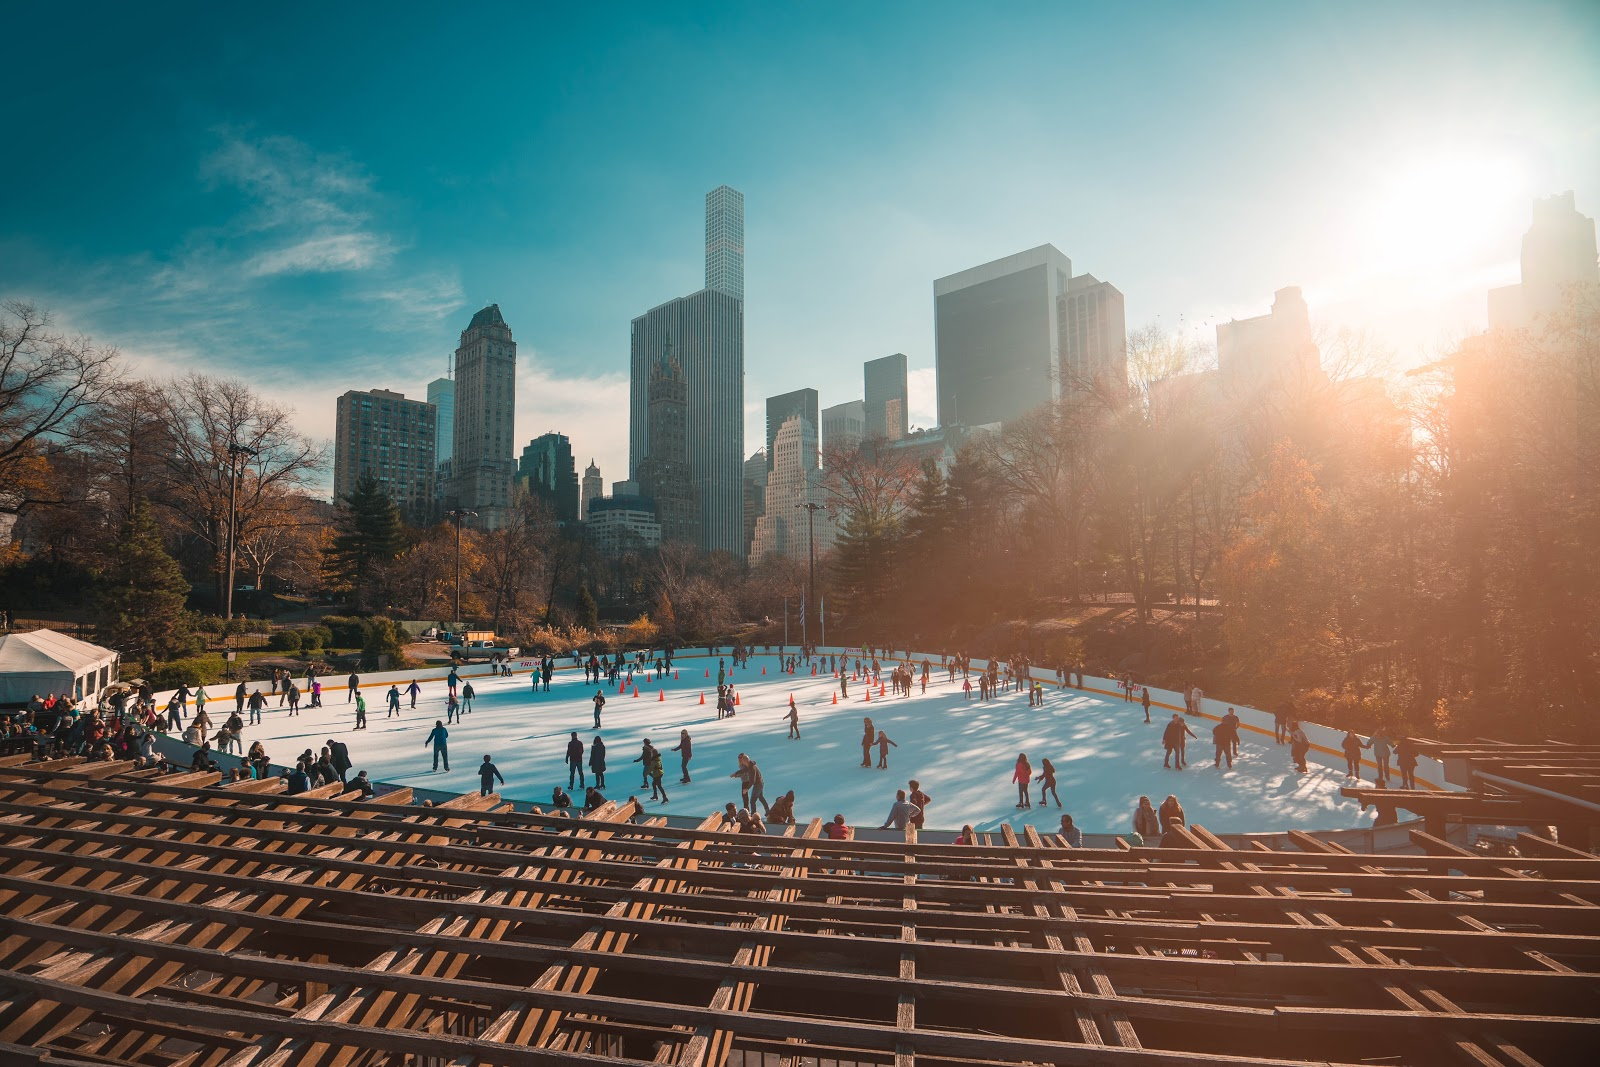 An ice skating rink in the middle of a city